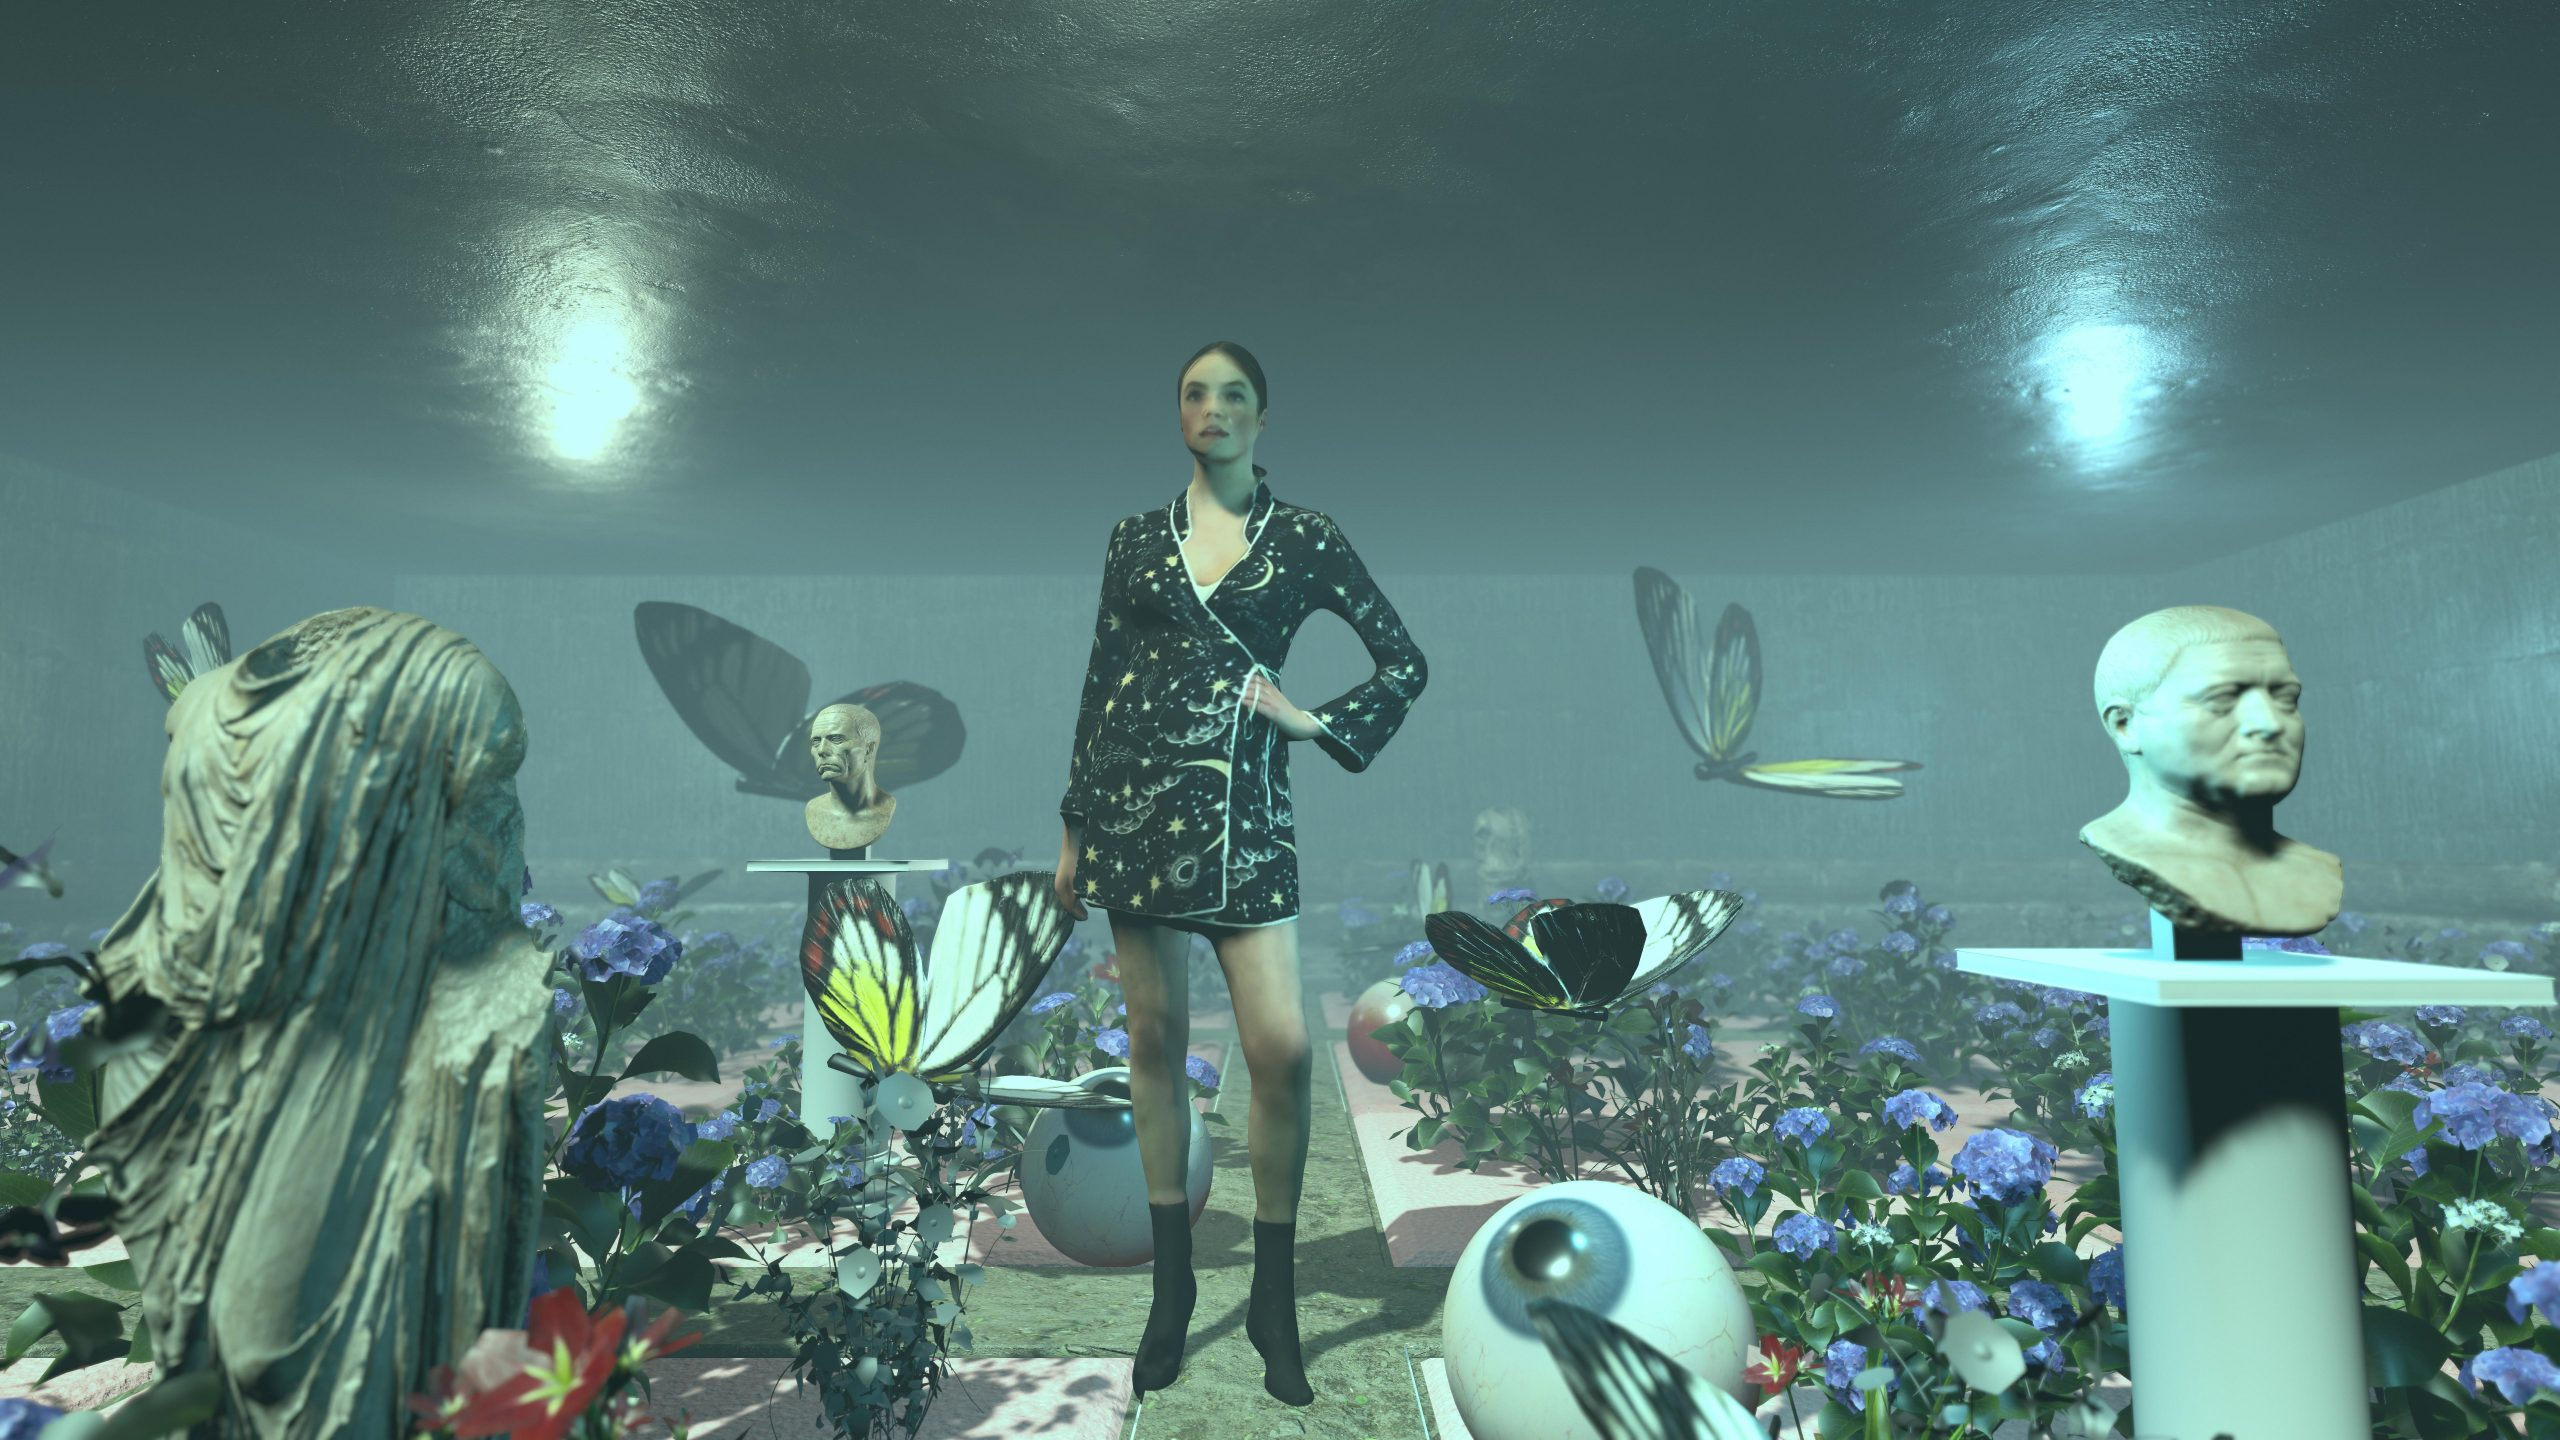 Muse under water